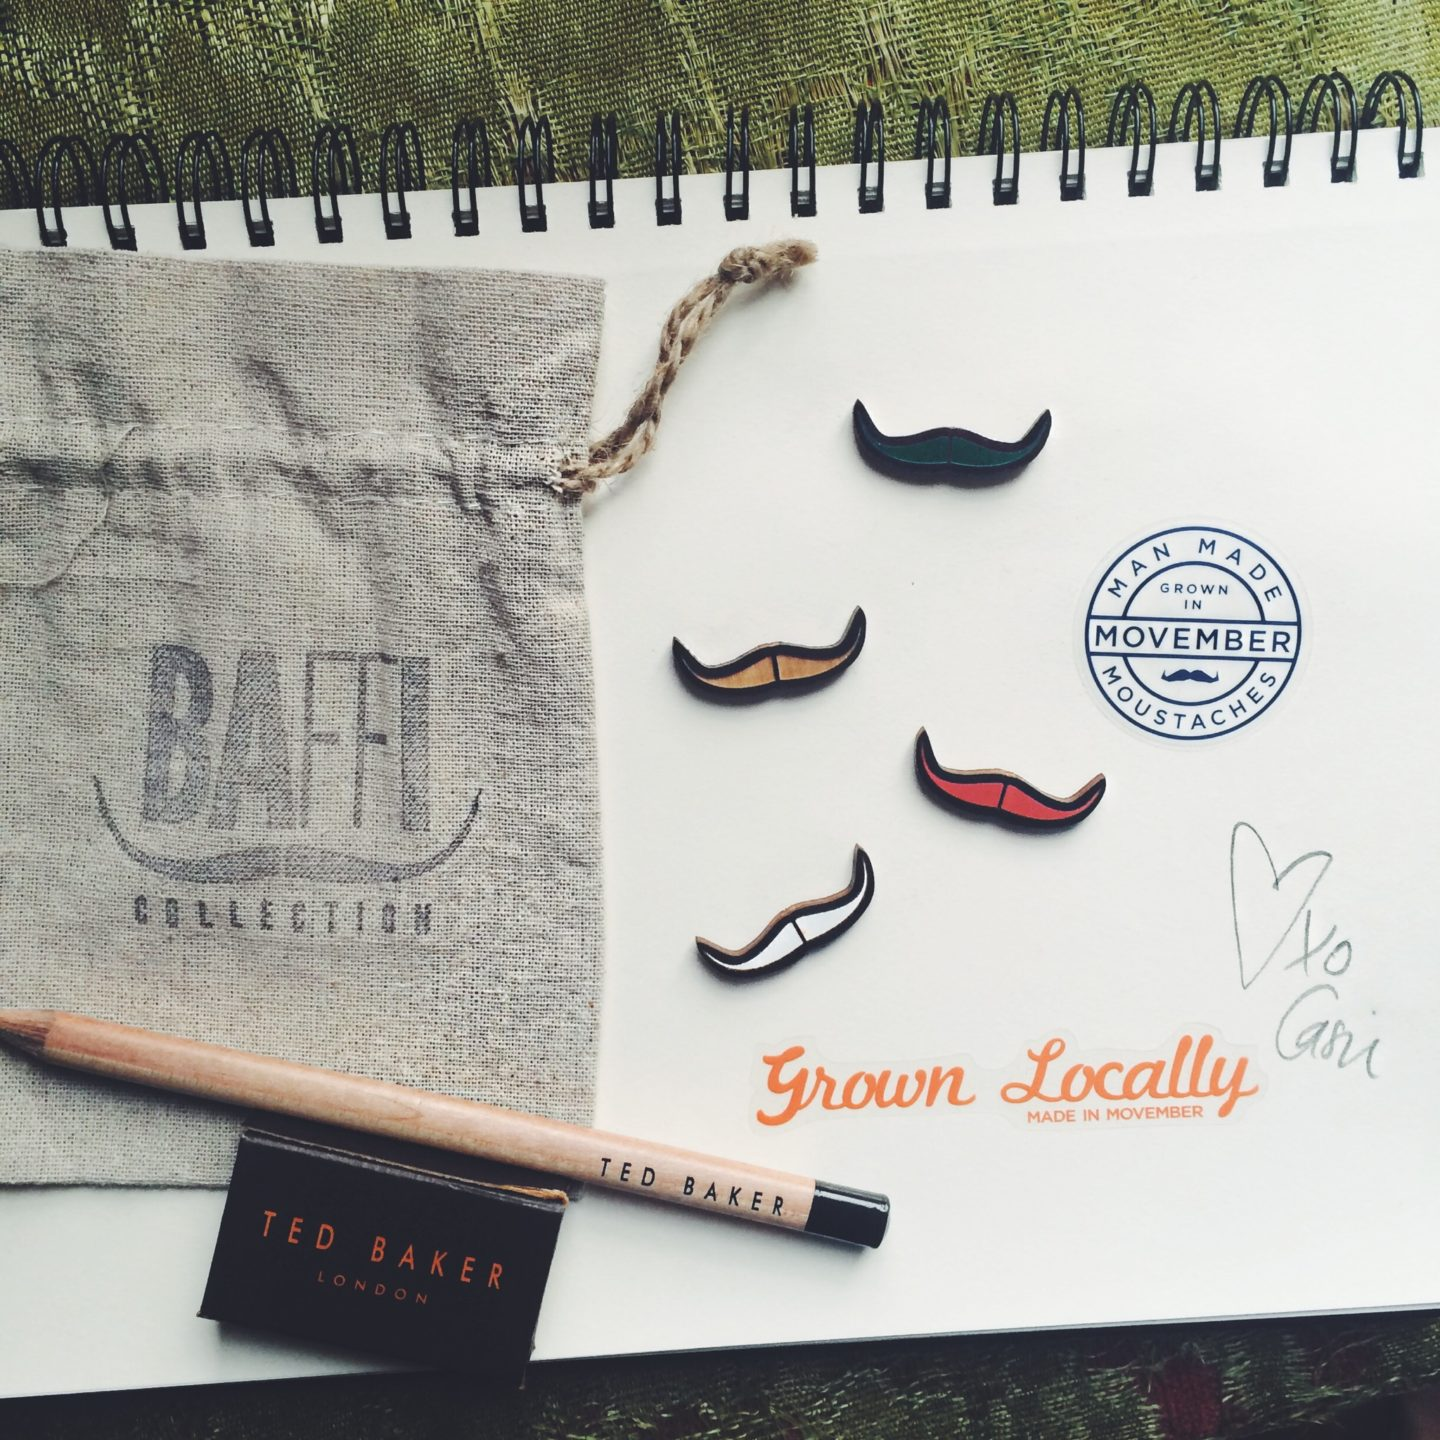 Fashion | BaffiCollection Wooden Lapels for Movember